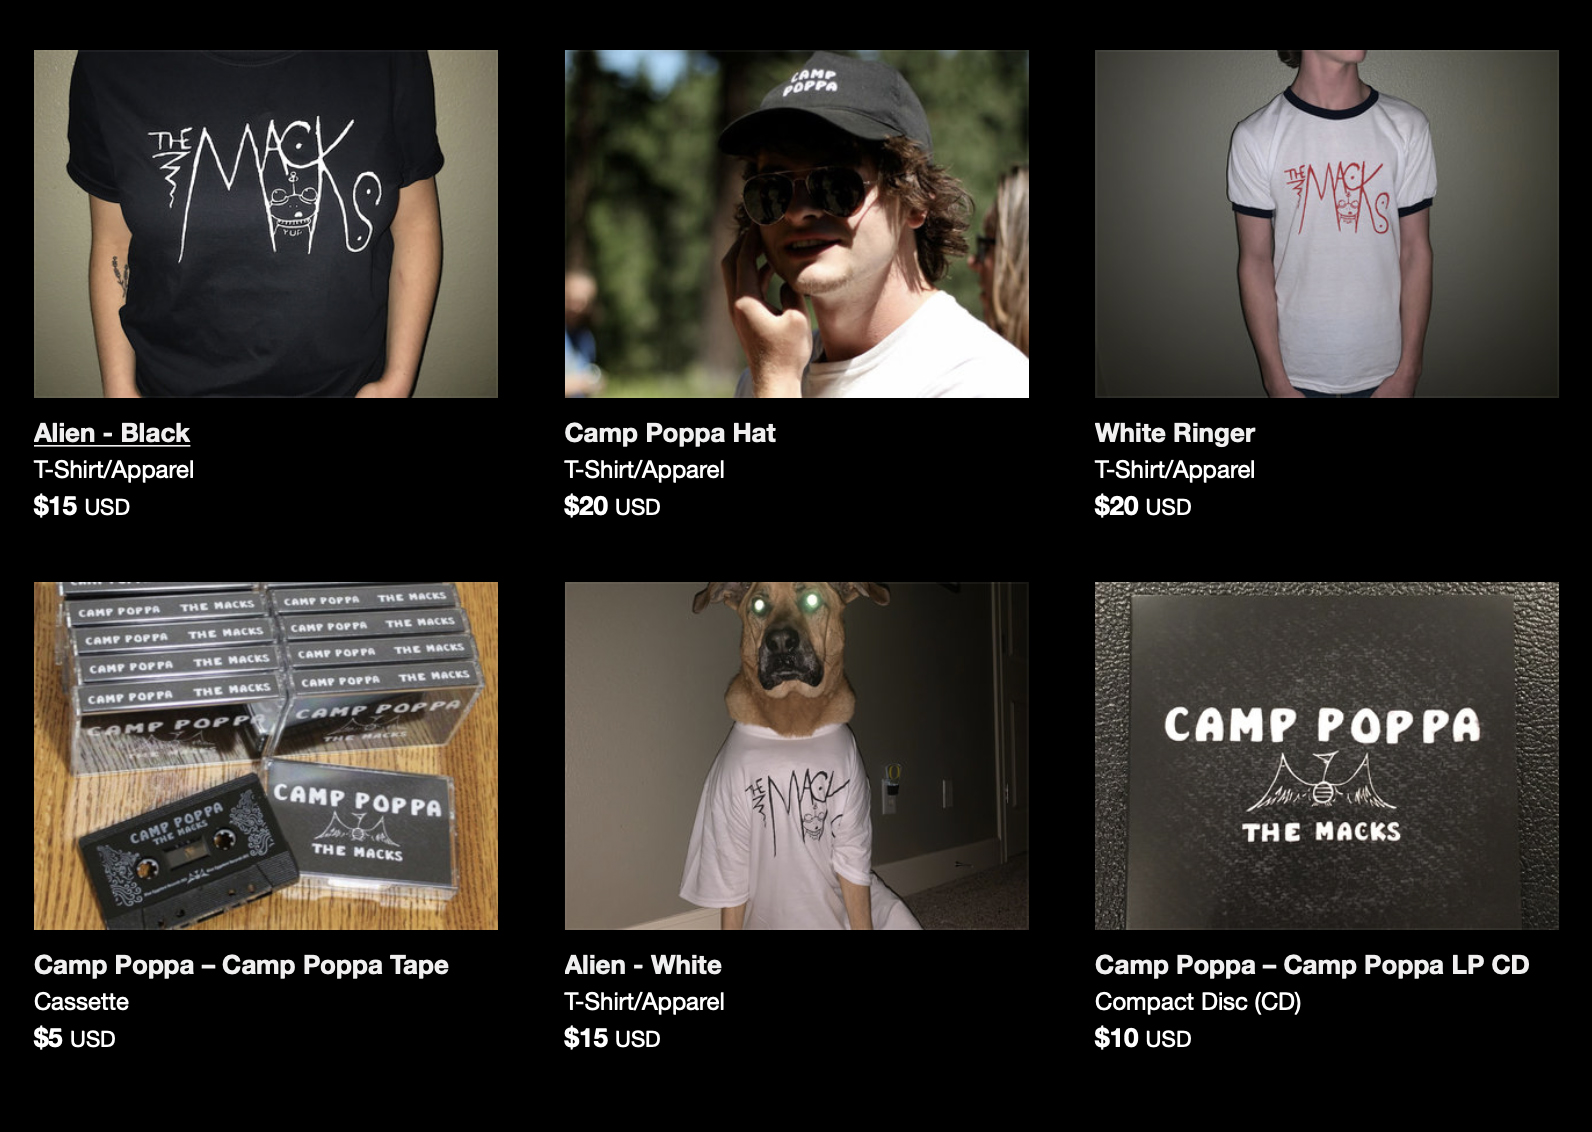 The Macks shirts, CDs, tapes, hats for sale at Bandcamp